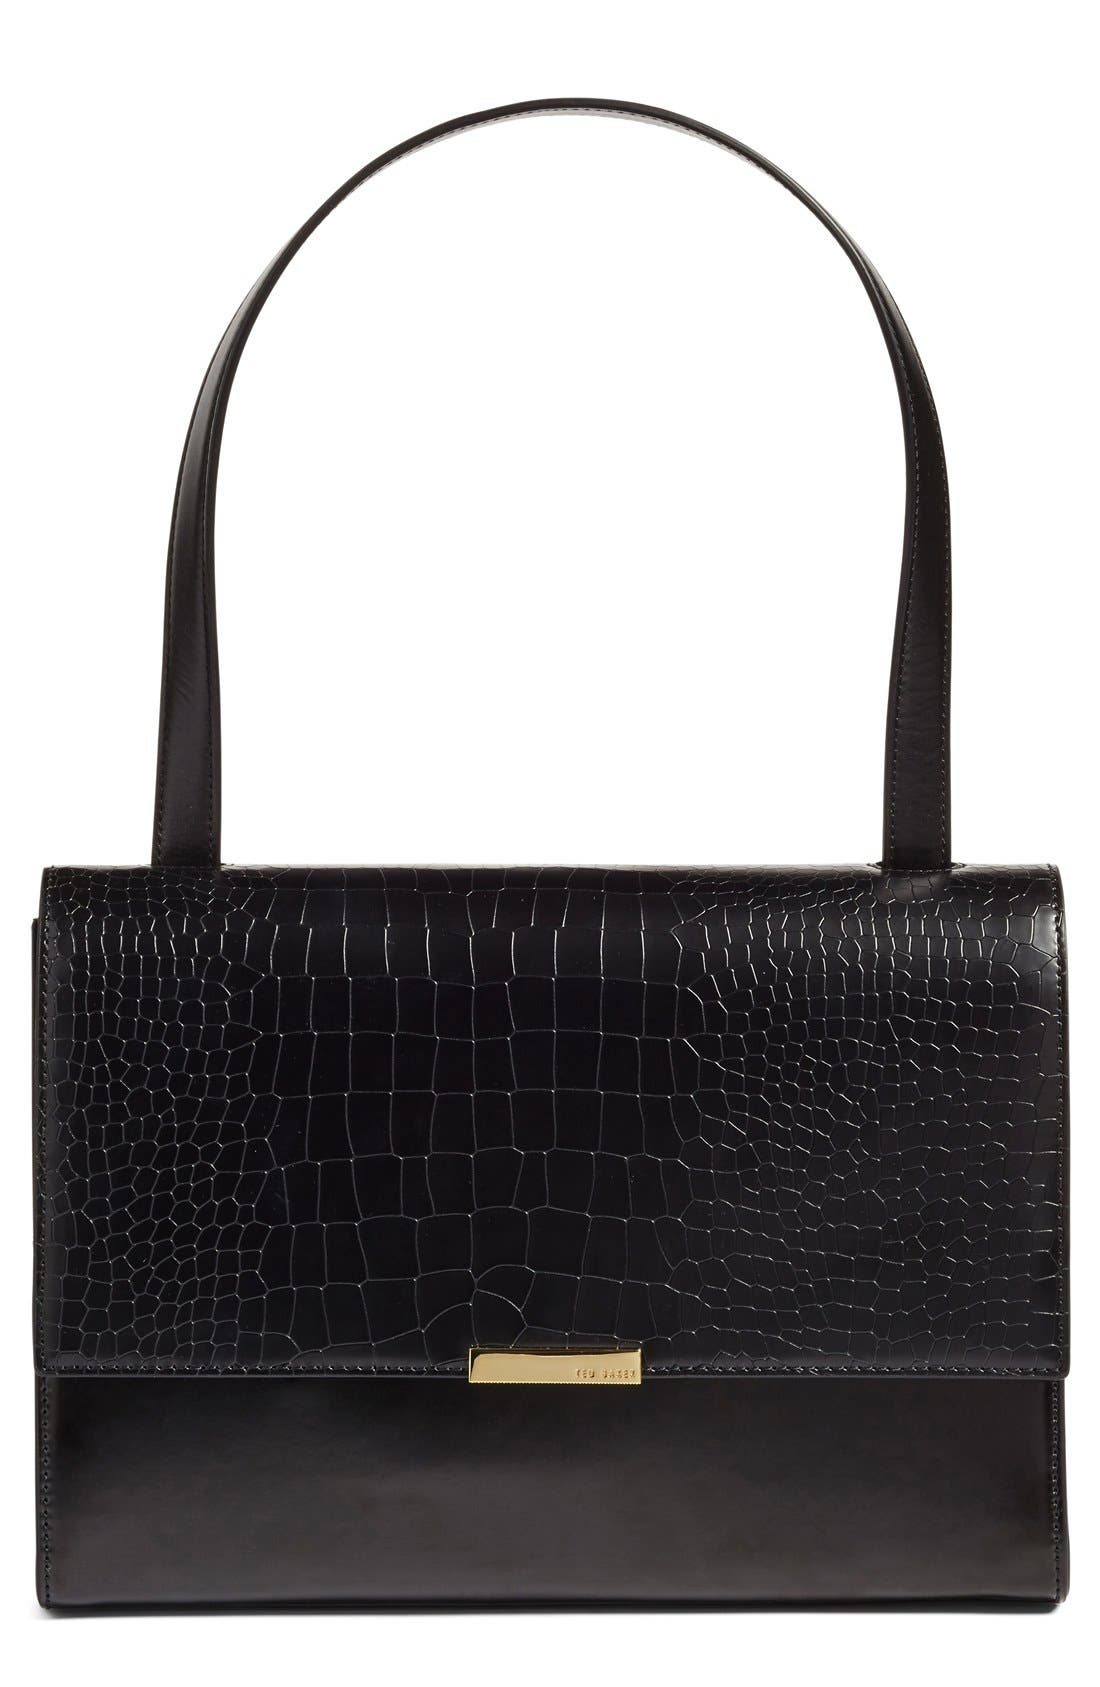 Main Image - Ted Baker London 'Lowri' Croc Embossed Leather Shoulder Bag